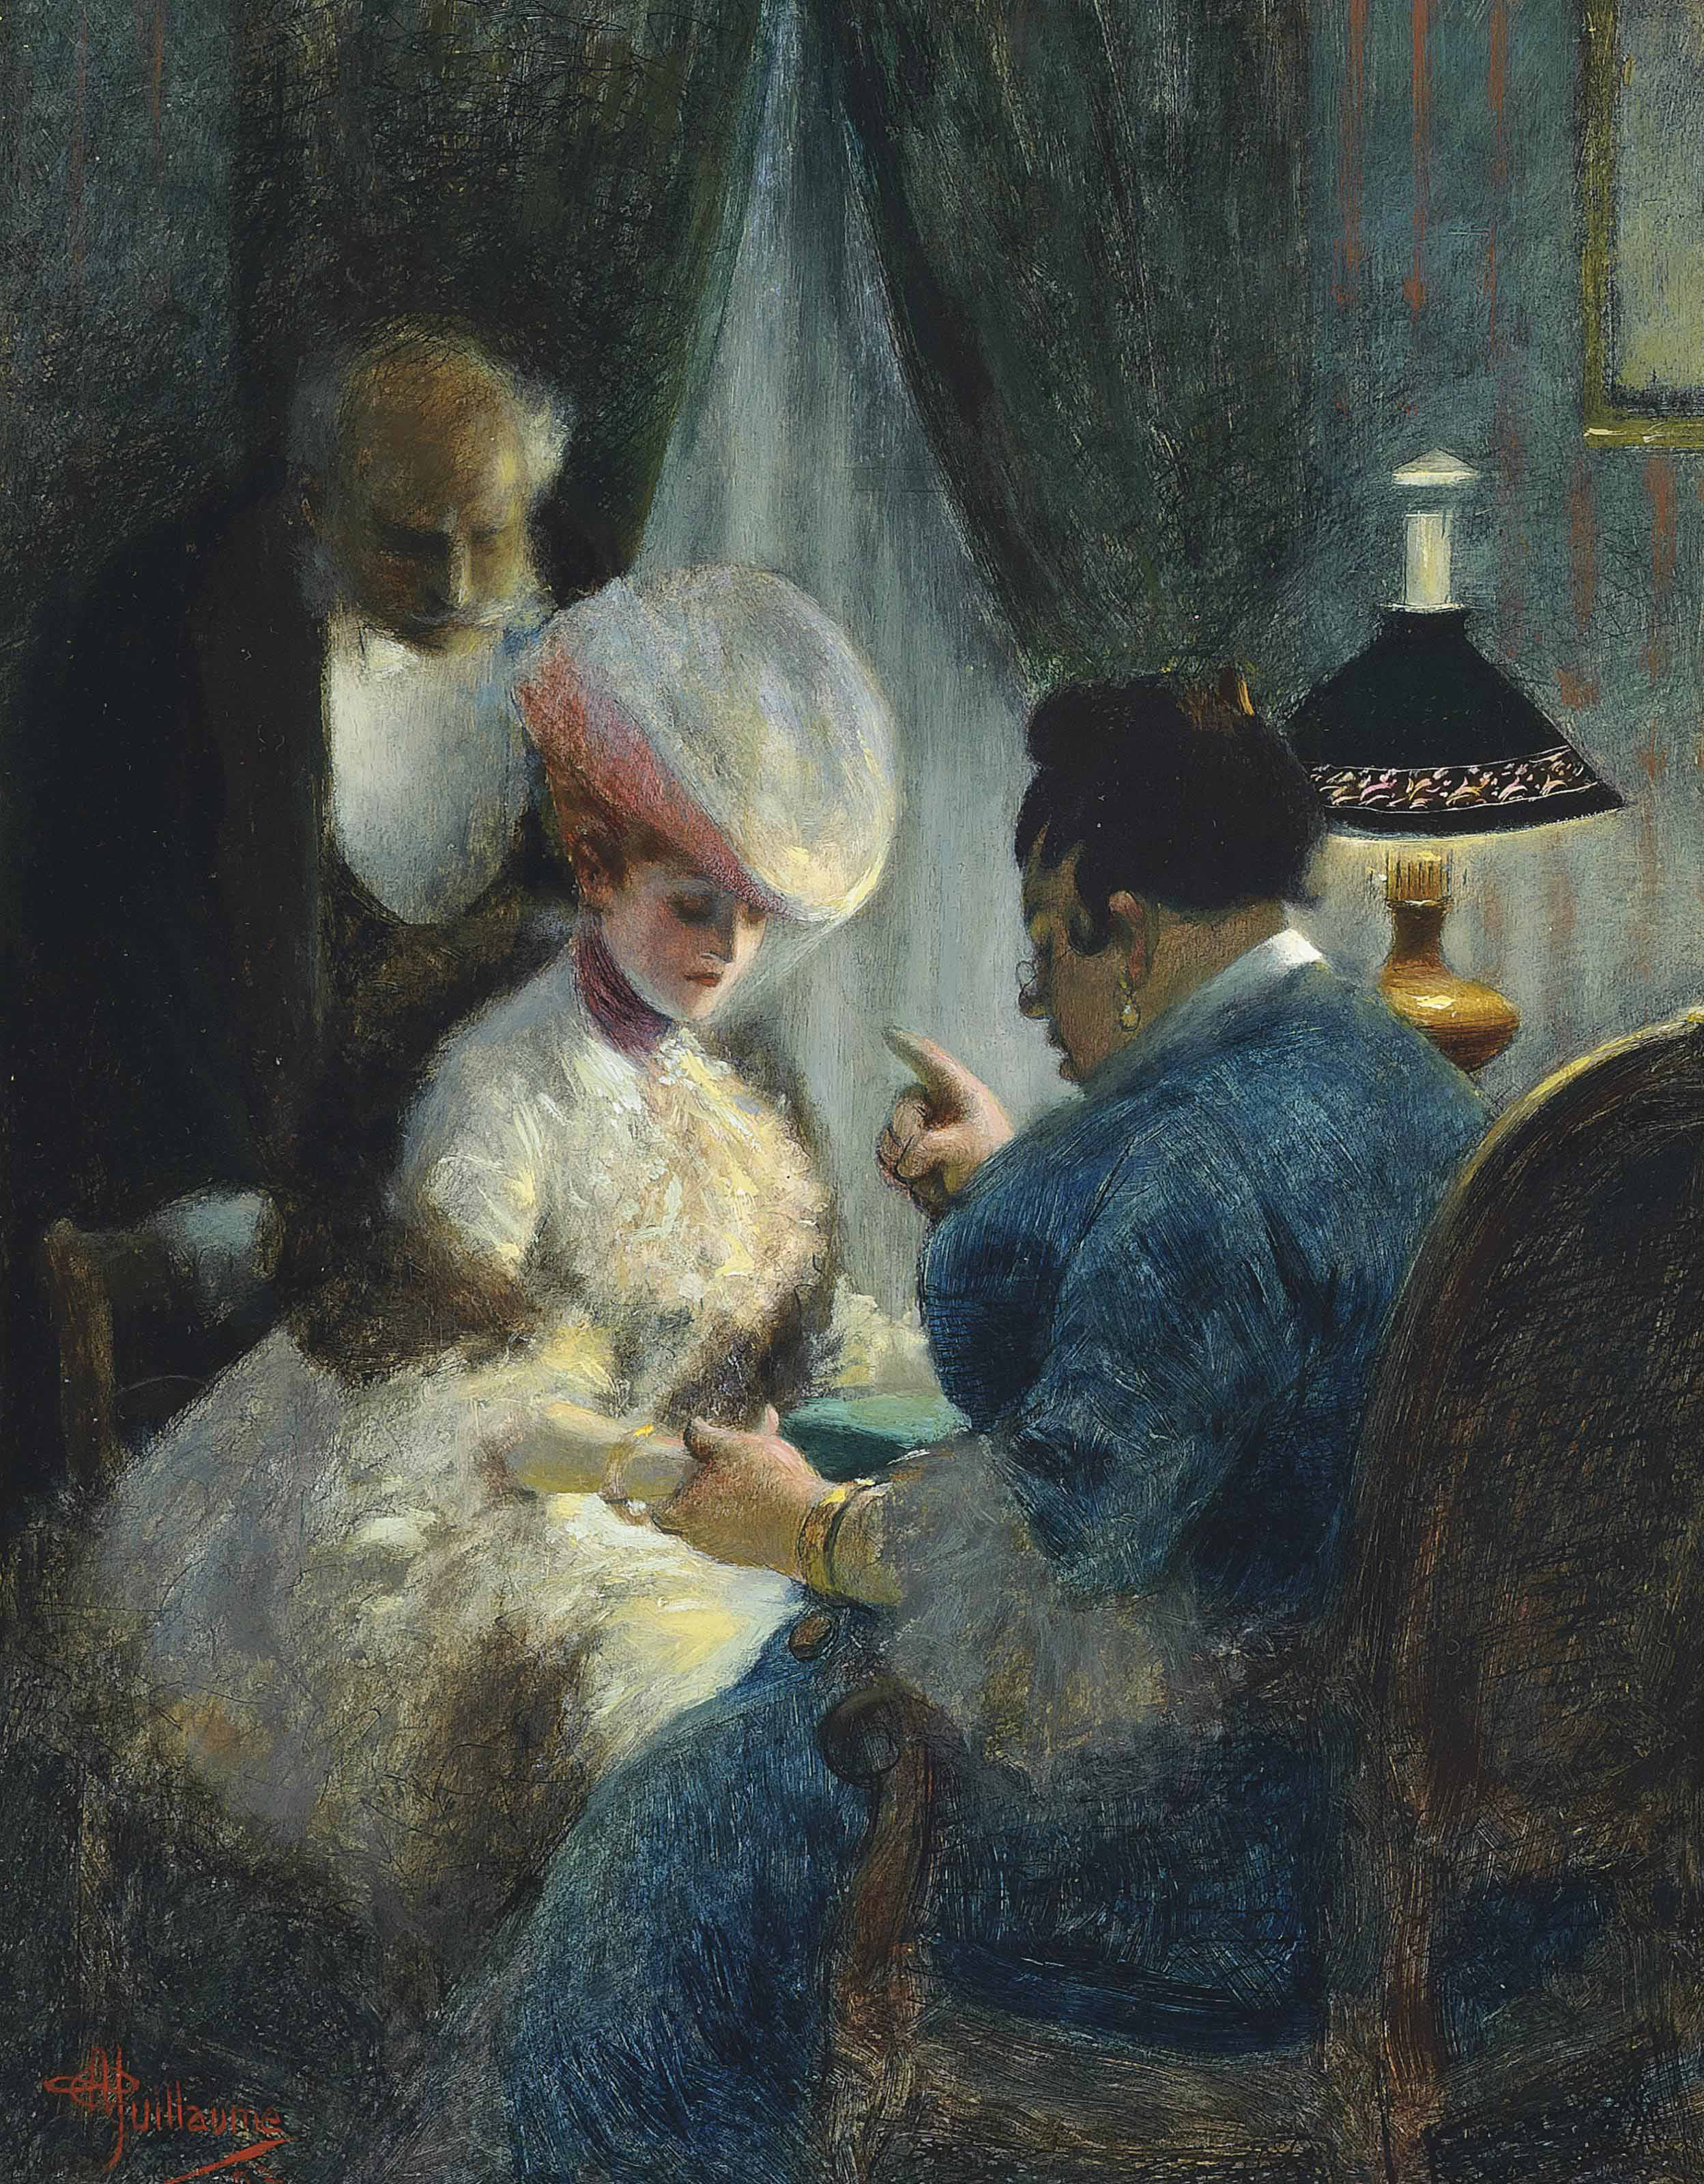 A visit to the fortune teller